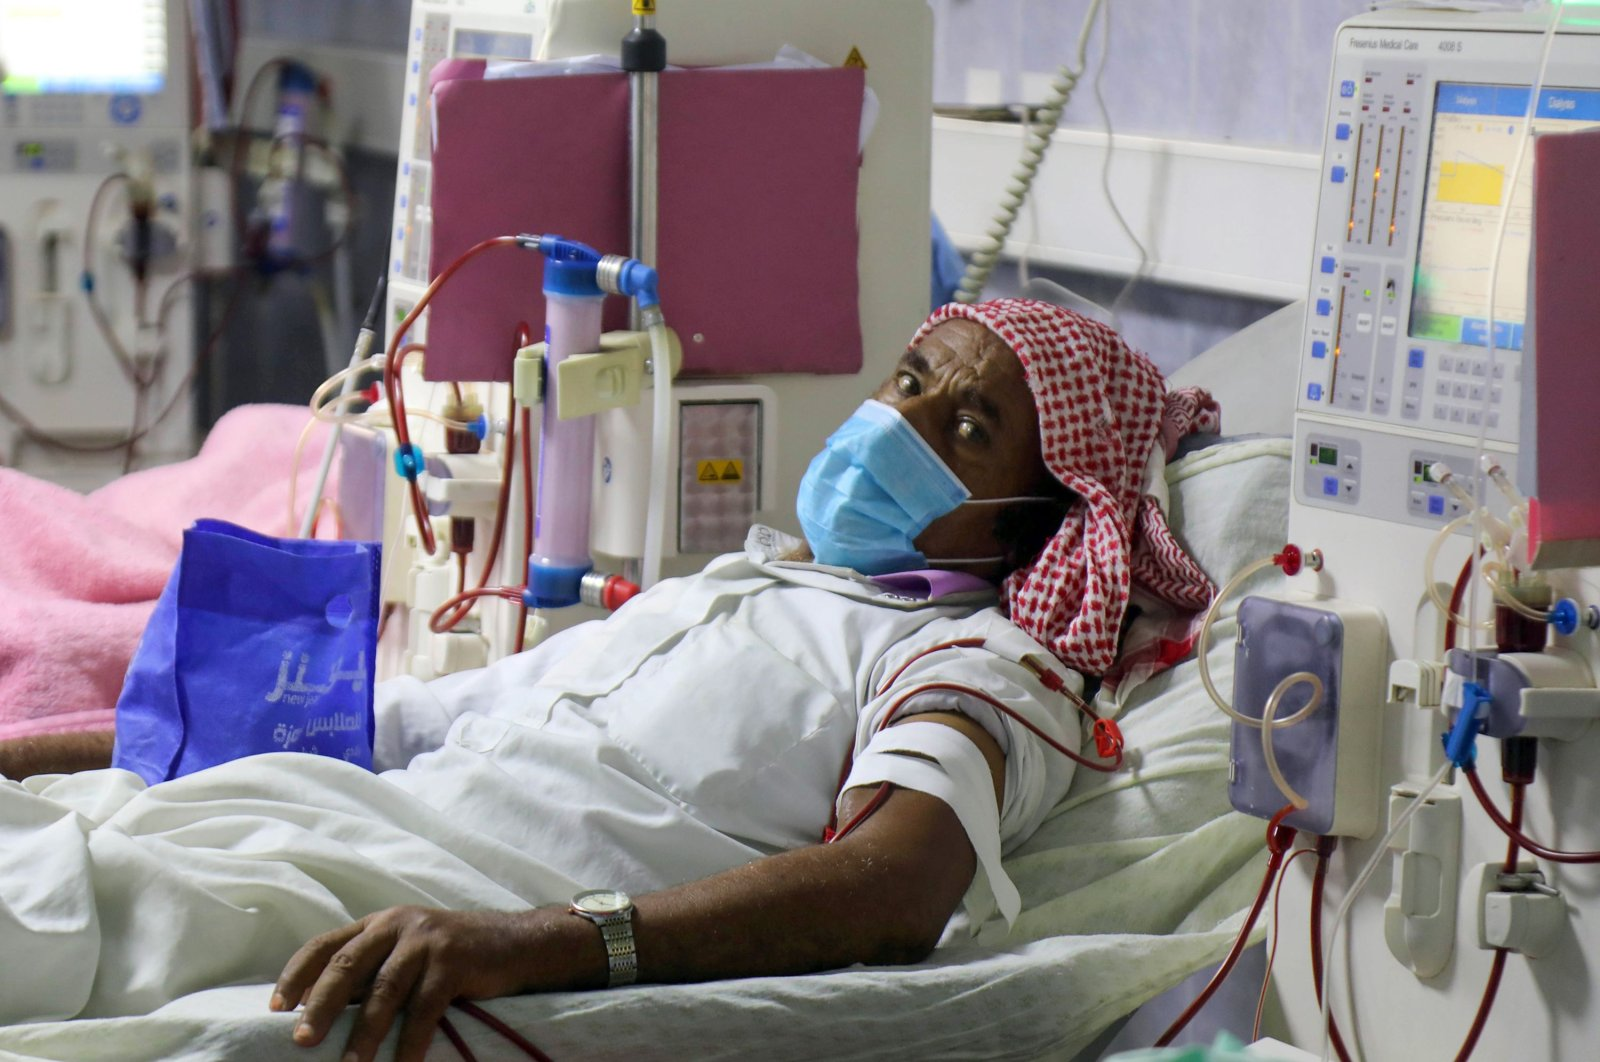 A mask-clad patient, suffering from kidney failure, receives dialysis treatment at al-Thawra hospital in the country's third-largest city of Taiz, Yemen, June 8, 2020. (AFP Photo)